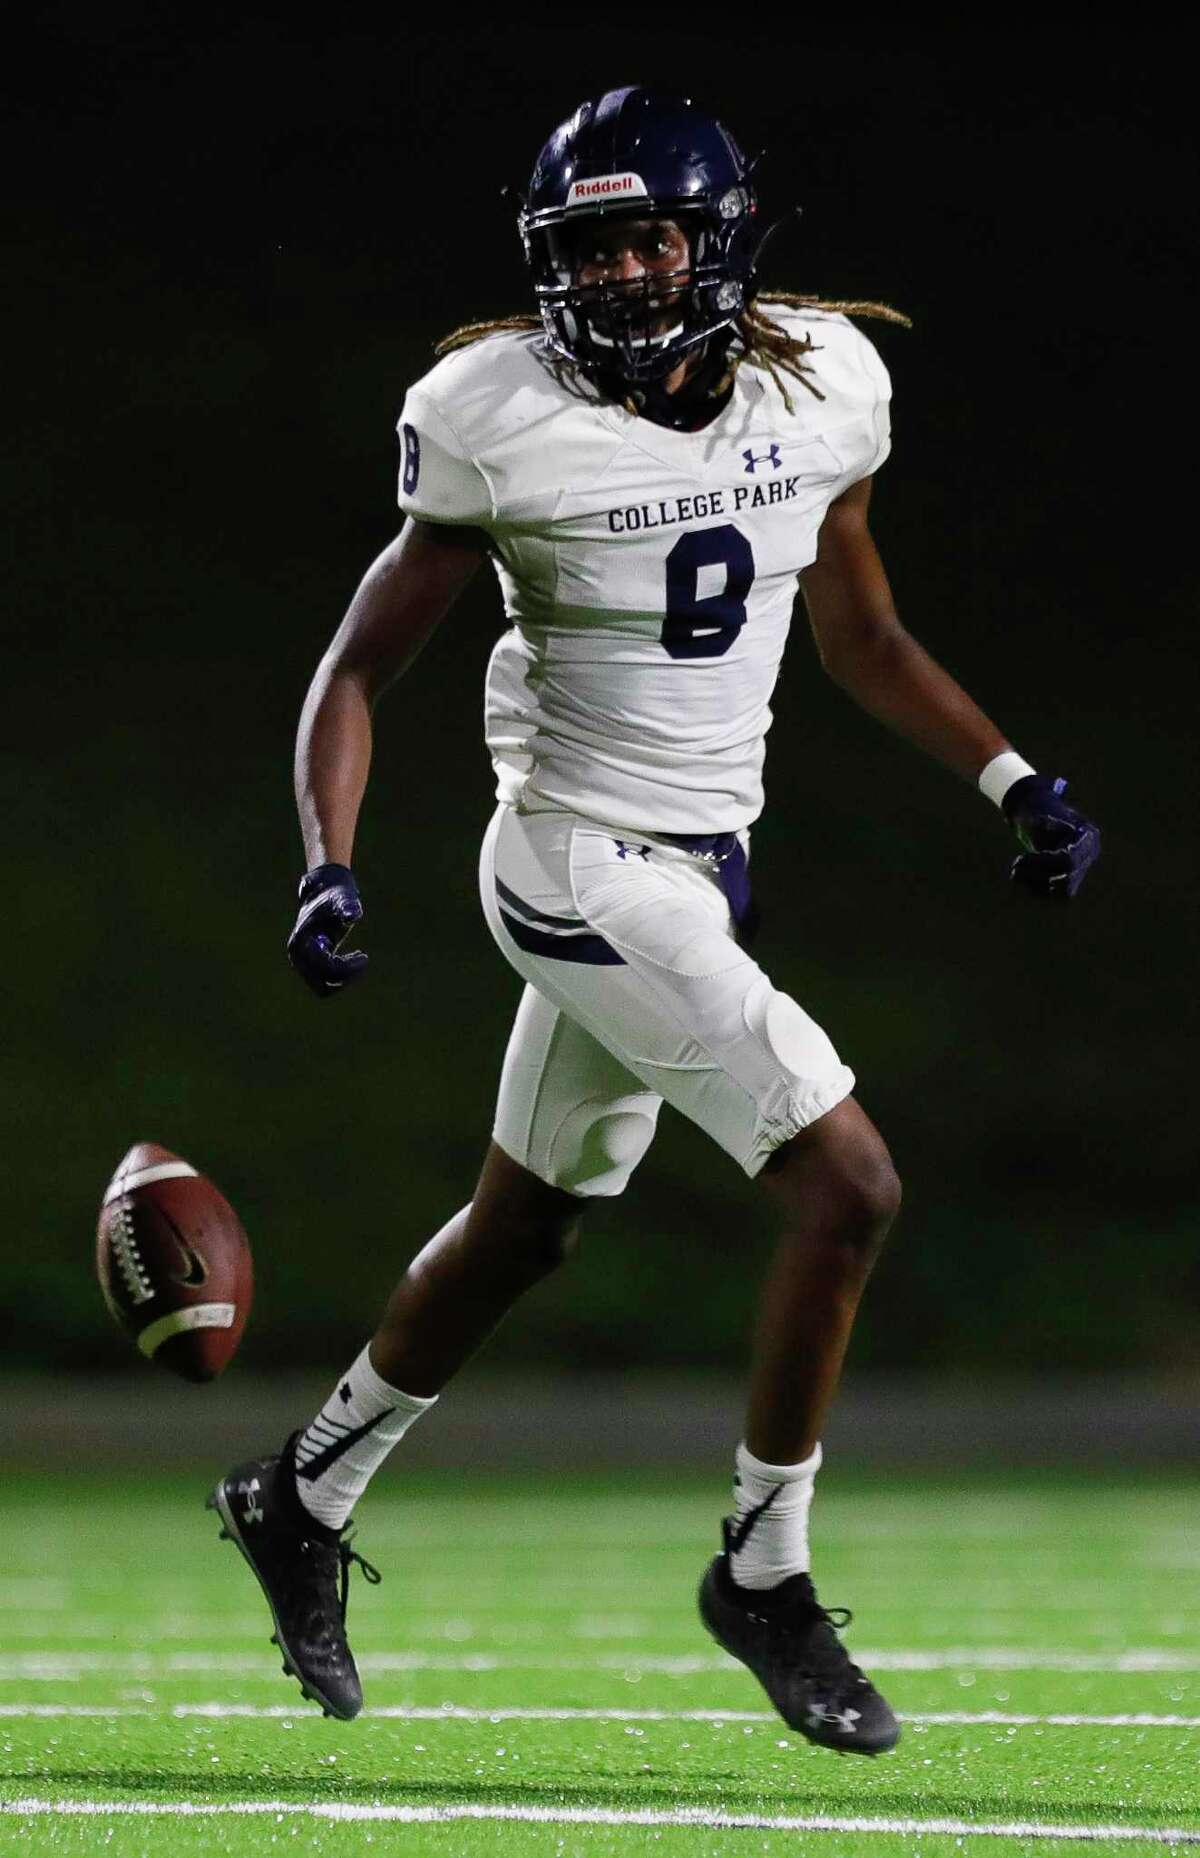 College Park defensive back Marcus Scott II (8) reacts after interepting a pass during the third quarter of a non-district high school football game at Edward Mercer Stadium, Saturday, Oct. 10, 2020, in Sugar Land.